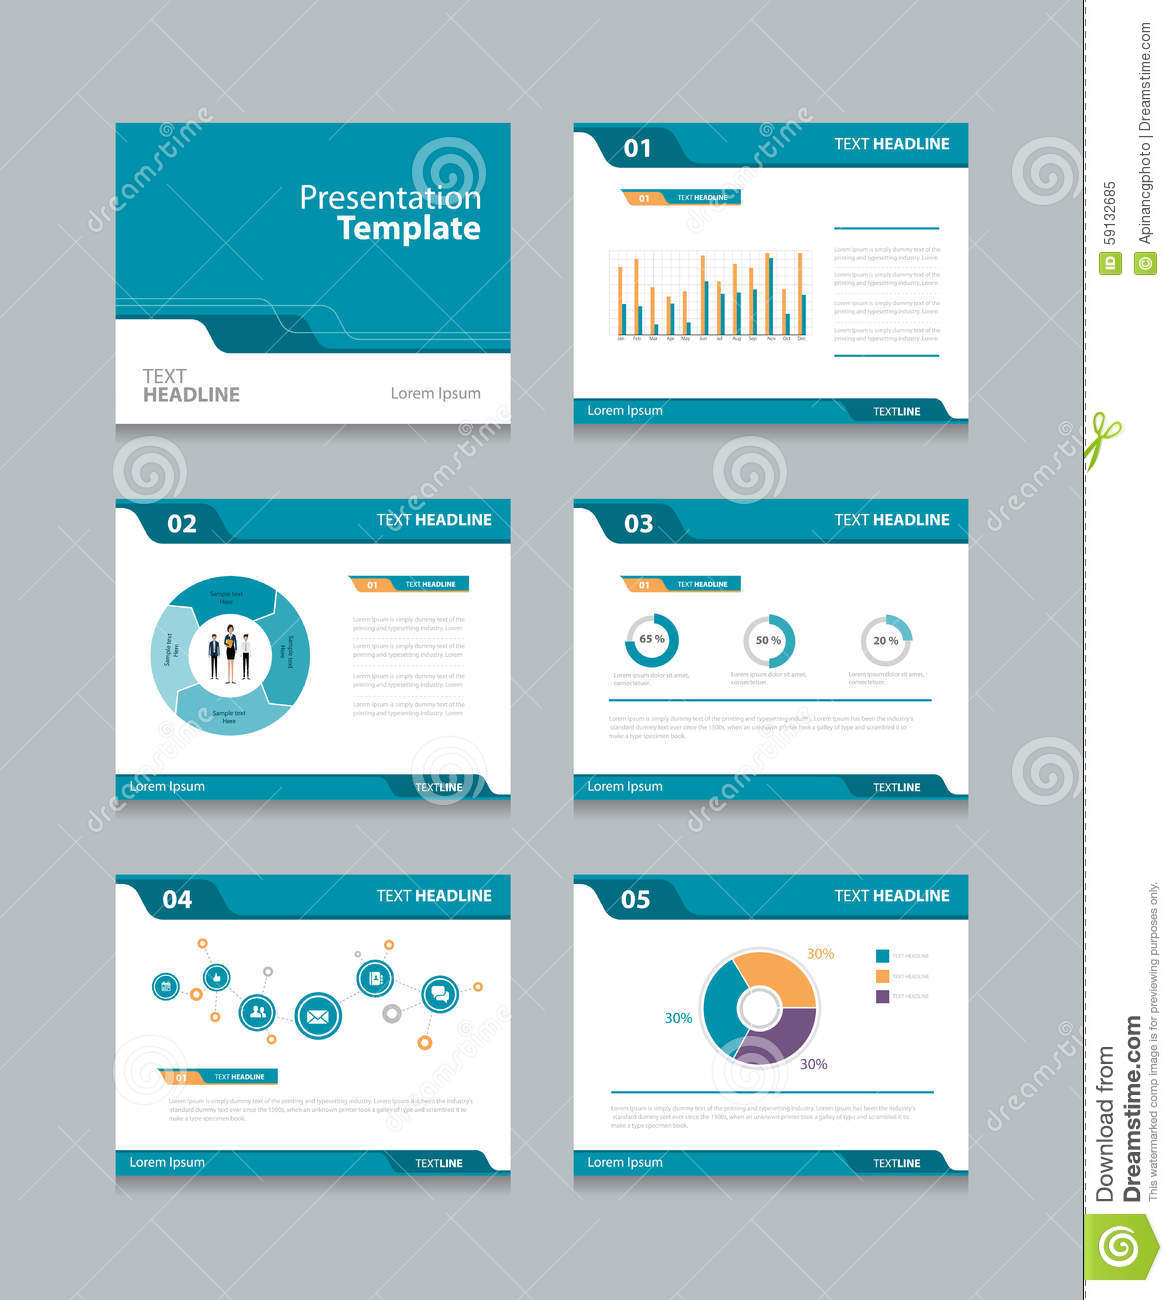 vector-template-presentation-slides-background-design -info-graphs-charts-slides-design-business-concept-59132685, Powerpoint templates